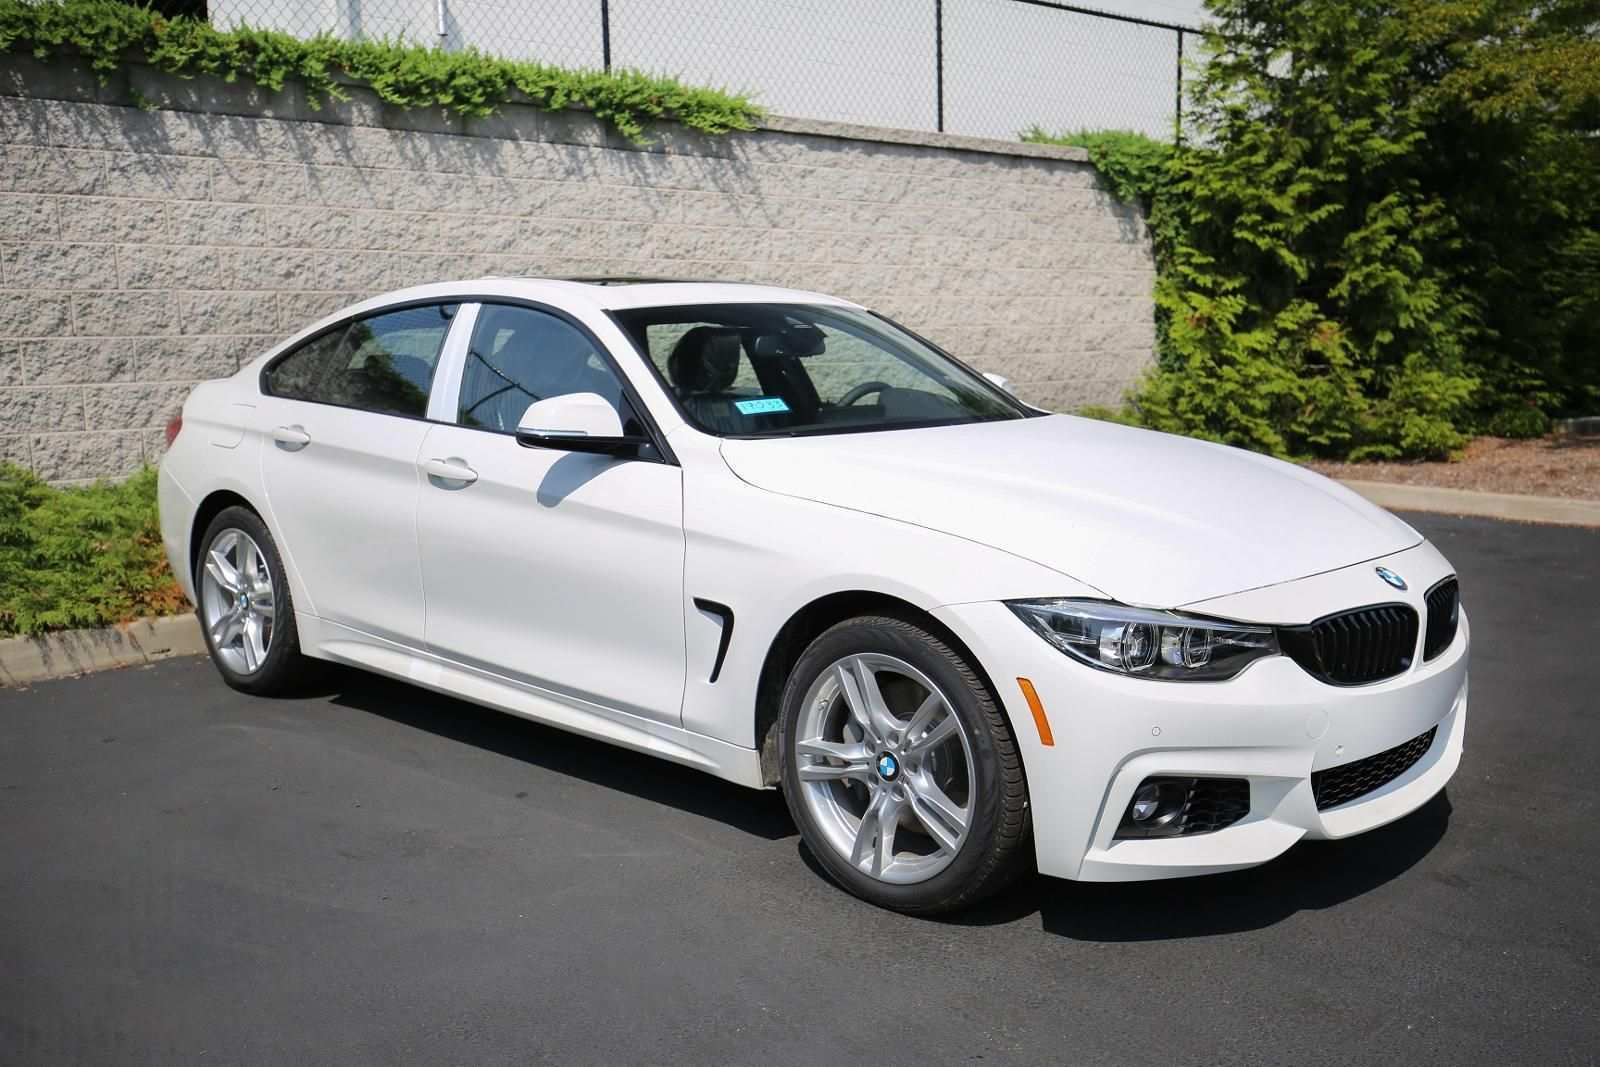 65 The 2019 Bmw 5500 Hd First Drive with 2019 Bmw 5500 Hd